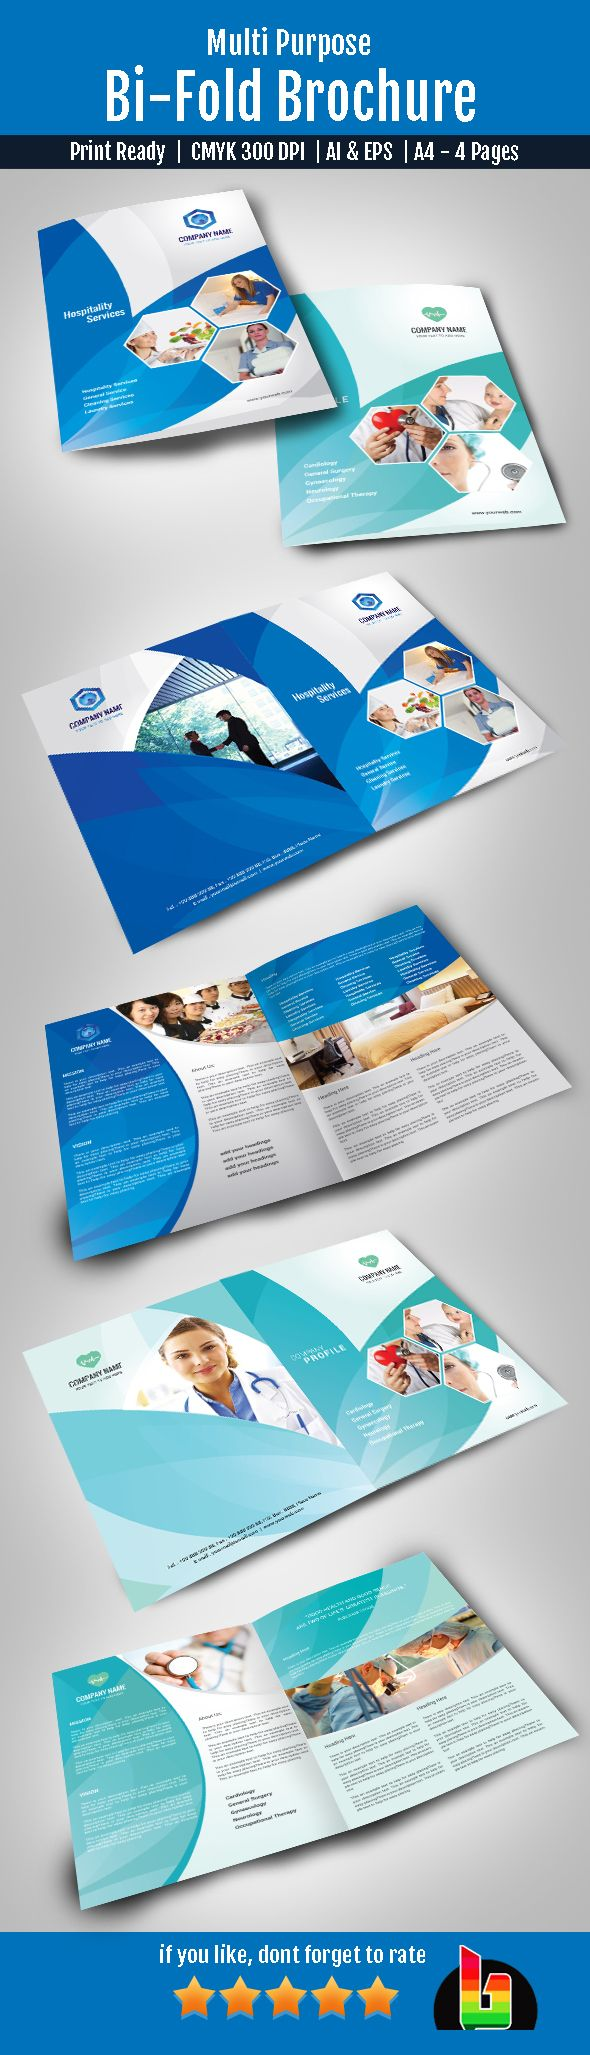 bi fold brochure template illustrator - bi fold brochure on behance brand pinterest behance